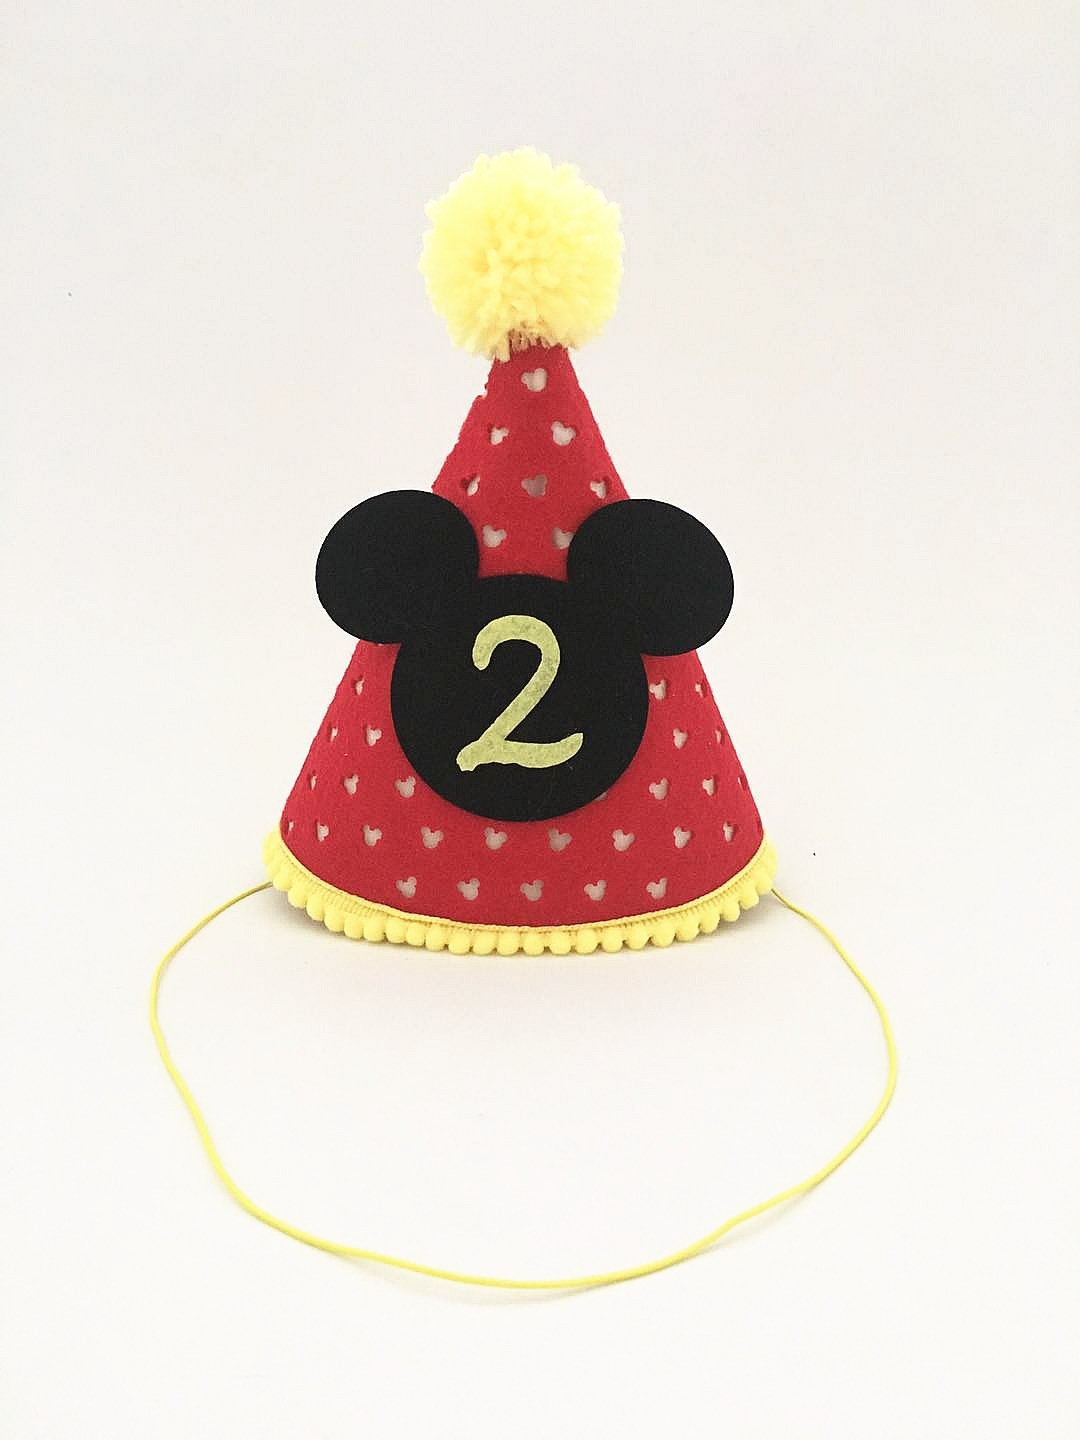 Mickey Party Hat| Second Birthday Outfit Boy Mickey Mouse Party Hat Cake Smash Outfit | 2nd Birthday Outfit | Party Hat | Cake Smash Cake Photoshoot Photoprop (Second Birthday Hat, Elastic Strap) by OrangeDolly